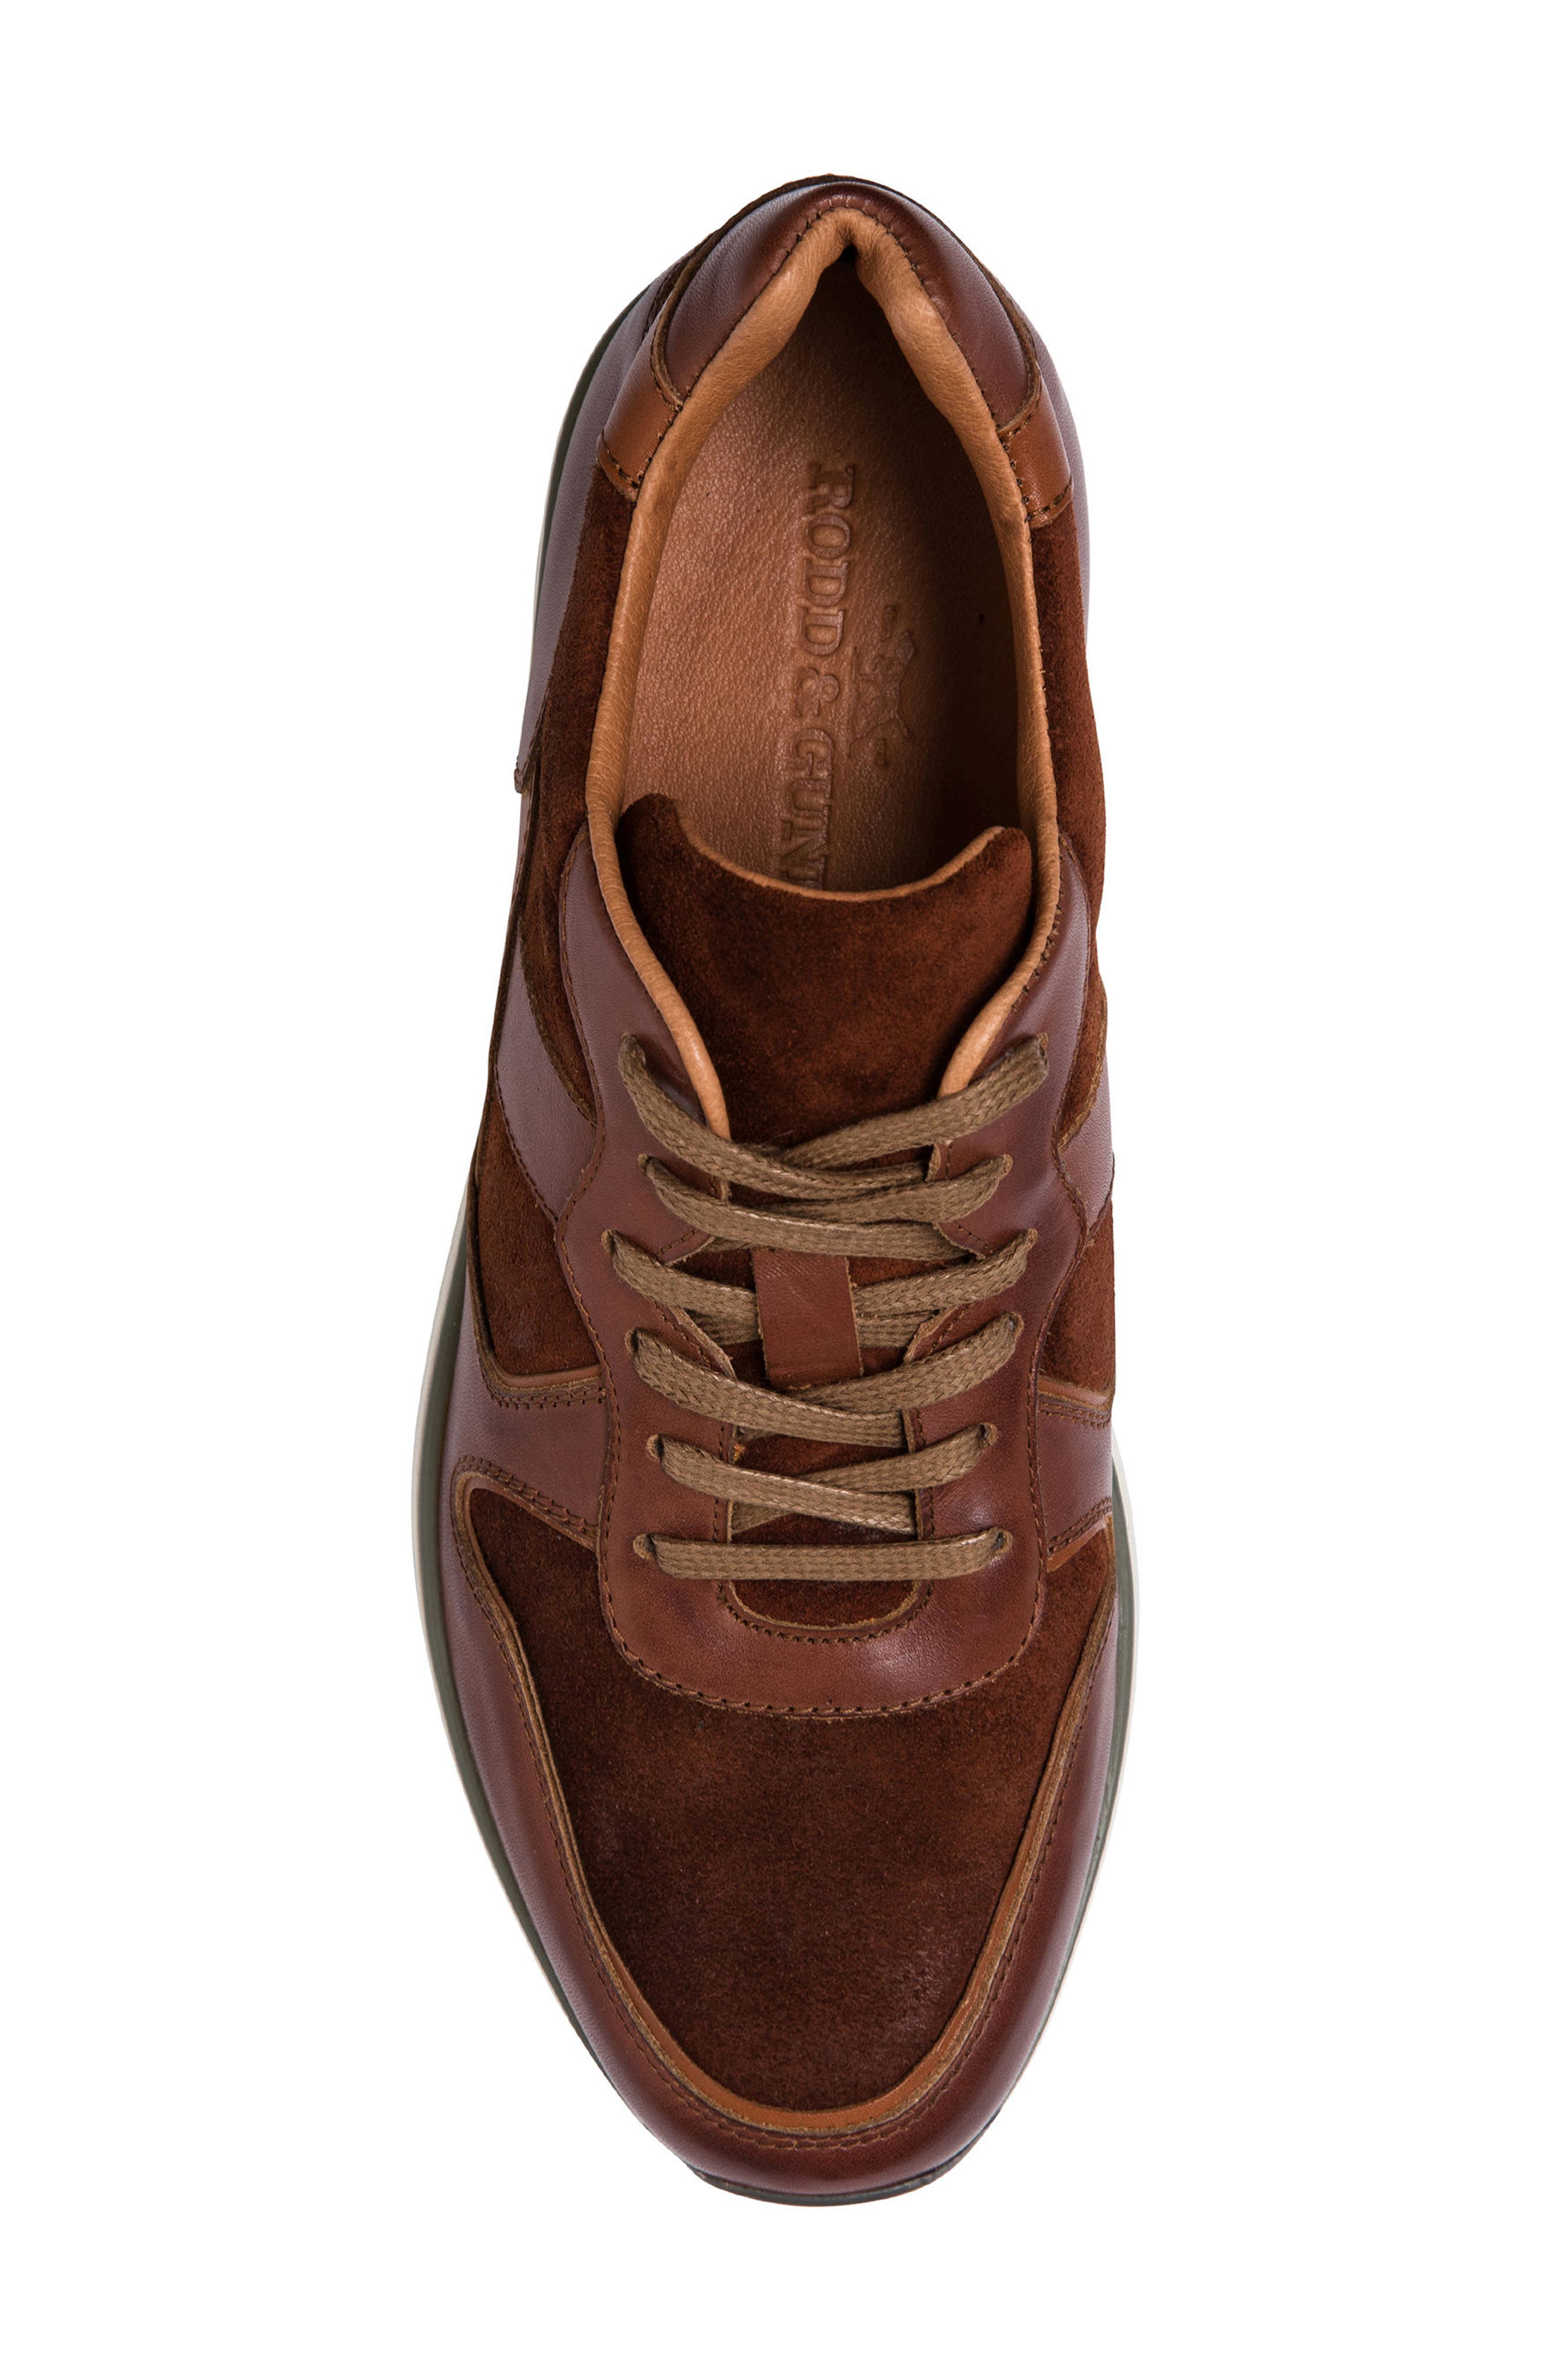 Hickory Sneaker,                             Alternate thumbnail 5, color,                             Tan Leather